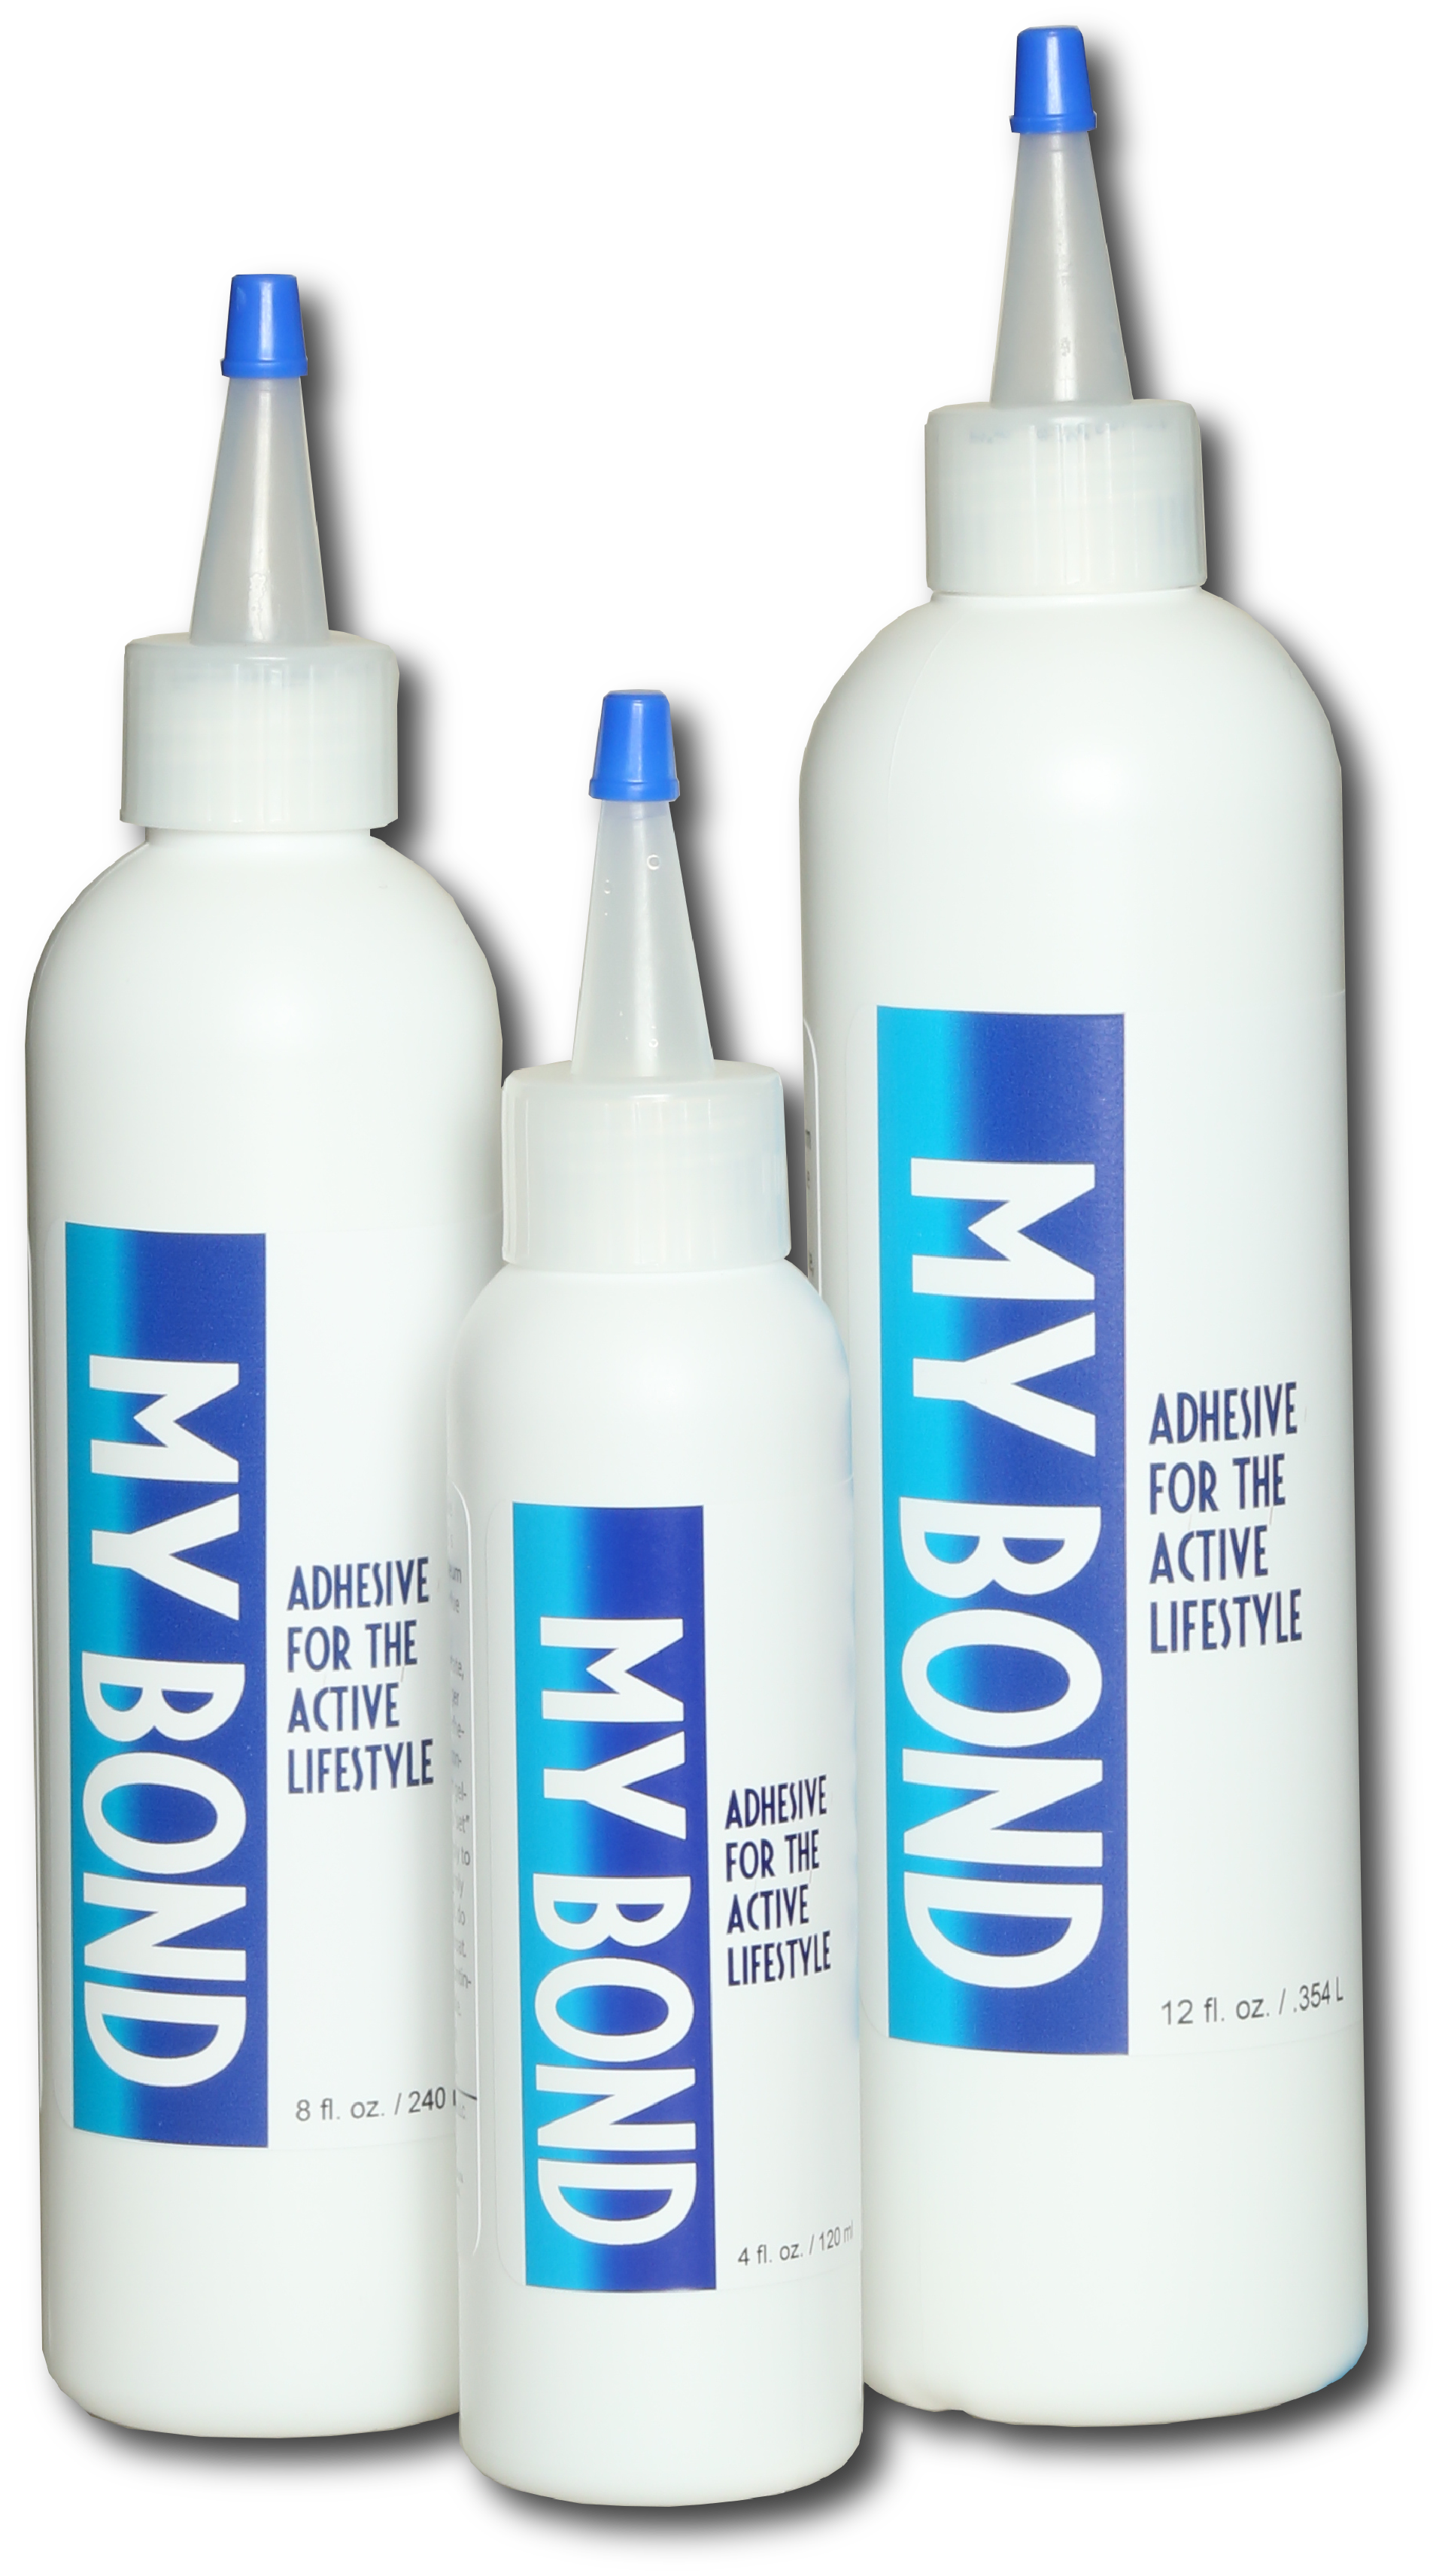 My Bond Adhesive GEL - imagine a long-term hold without